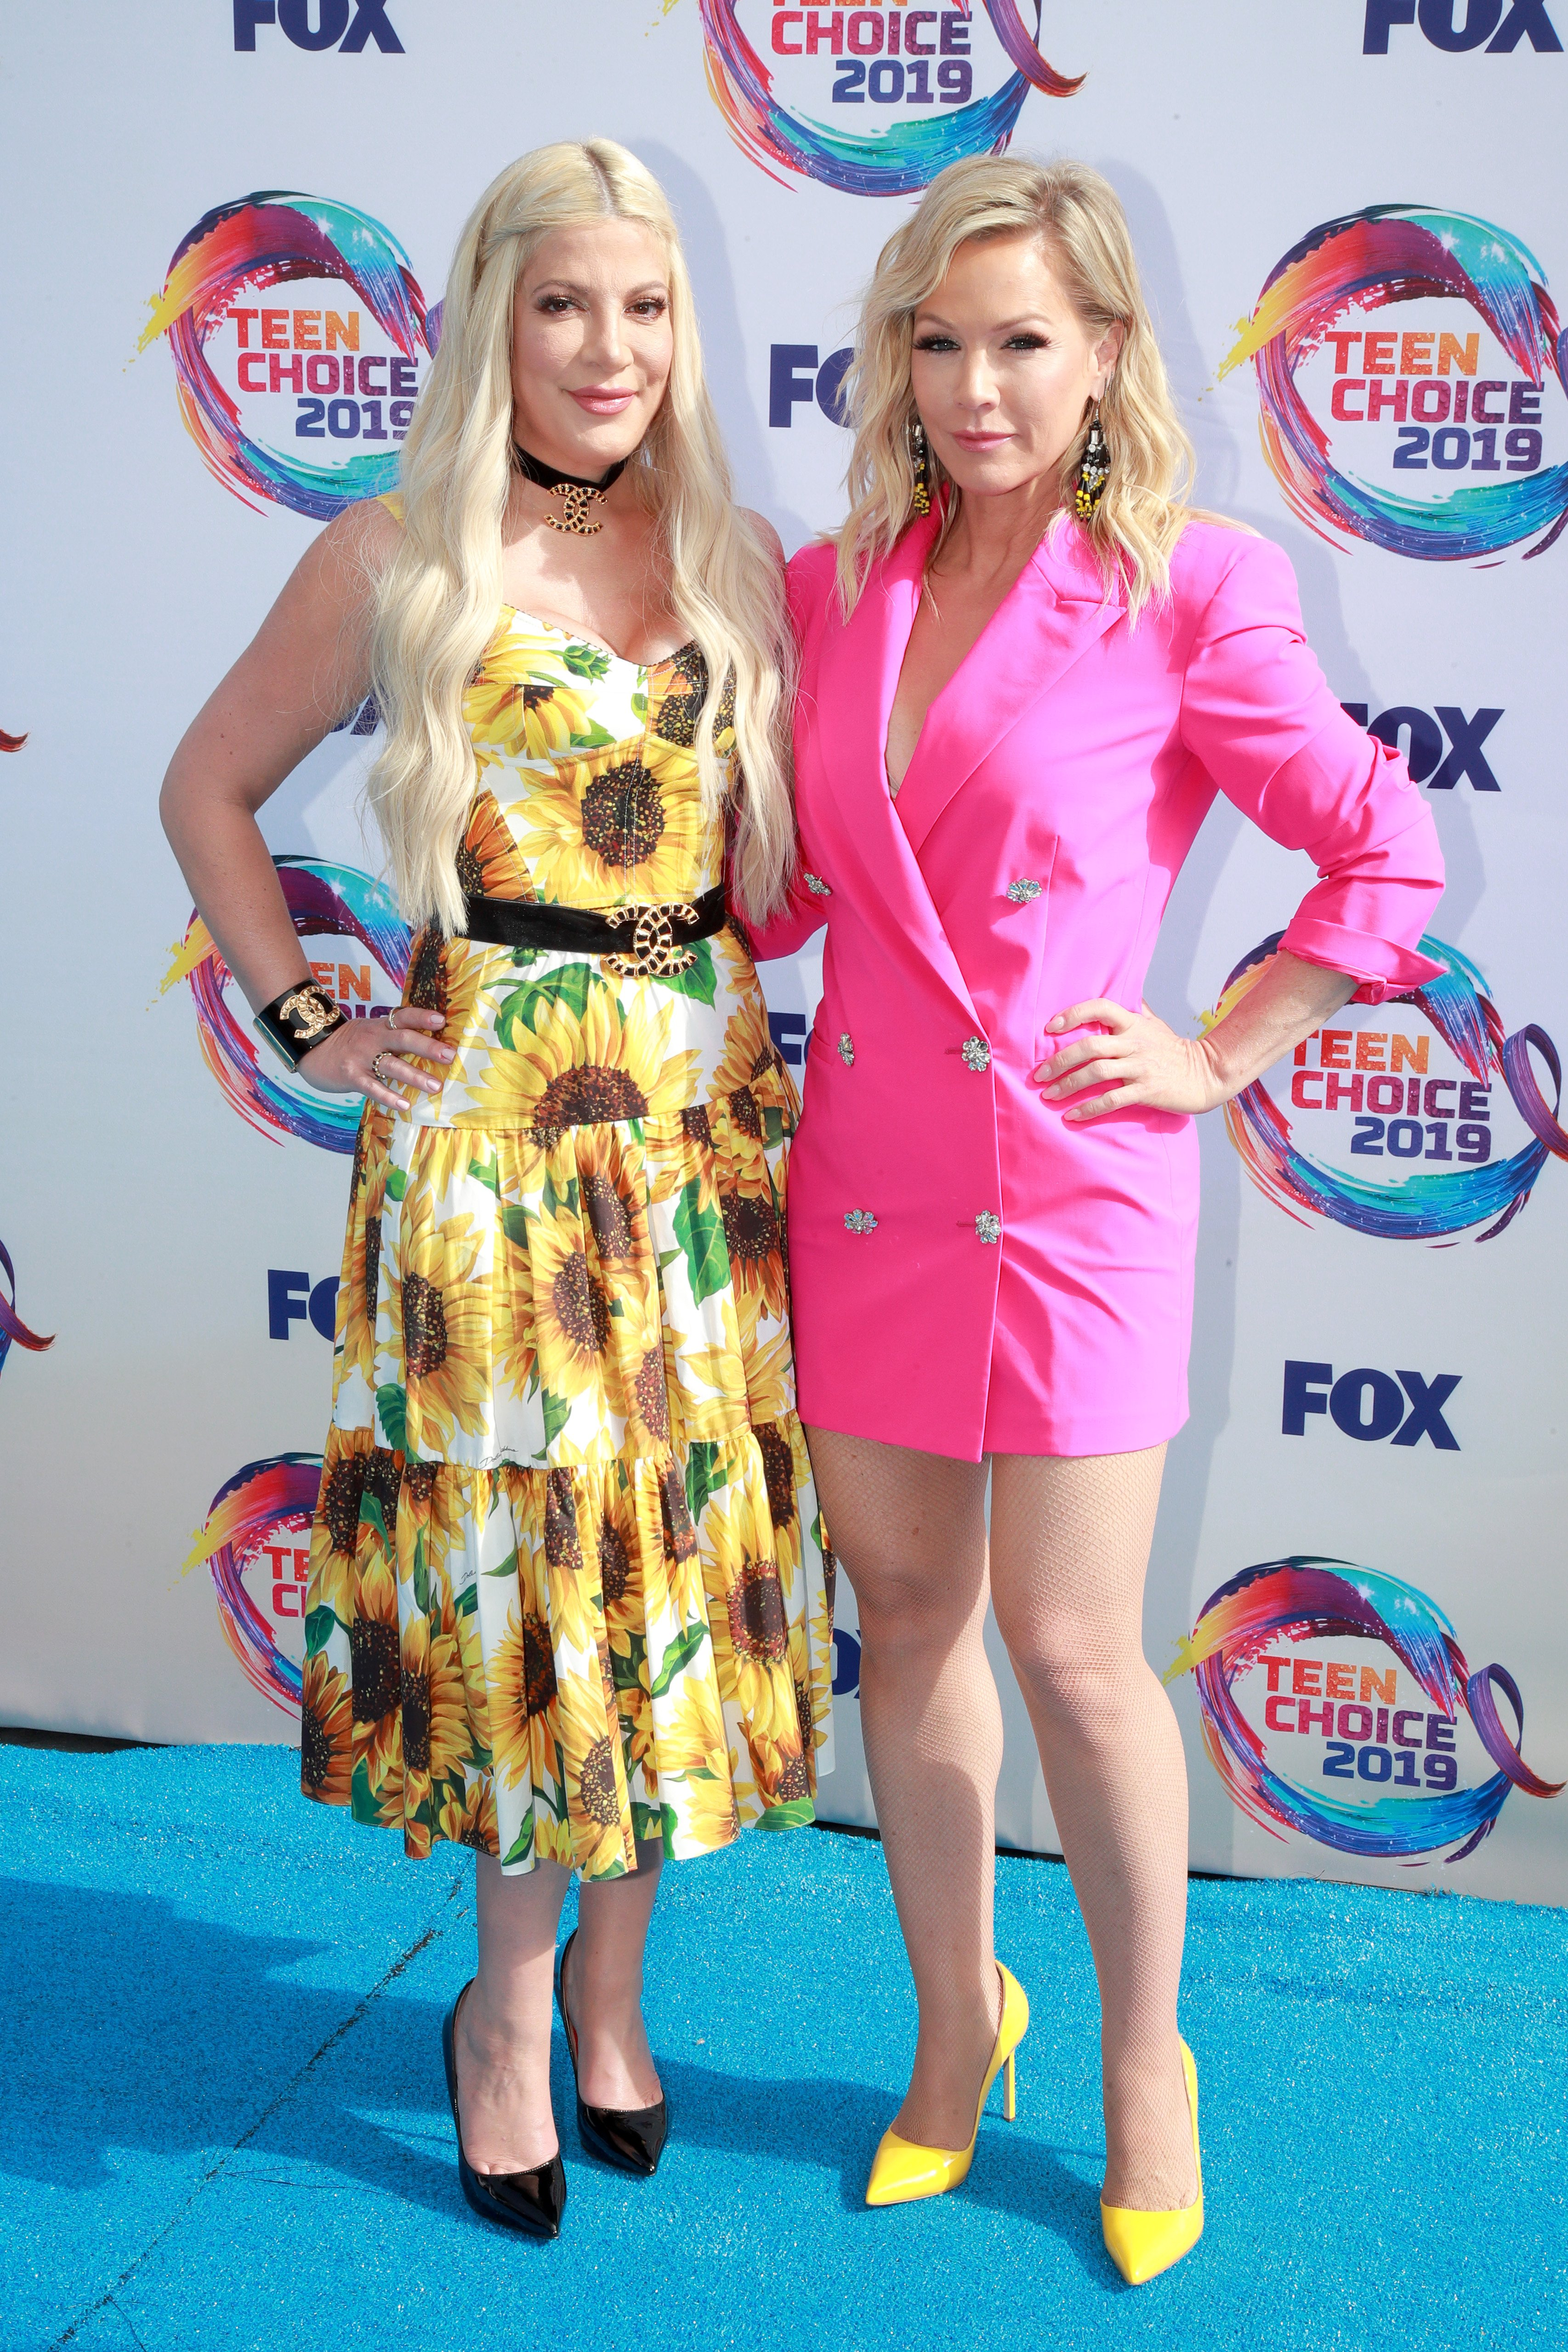 Tori Spelling and Jennie Garth attend FOX's Teen Choice Awards 2019 on August 11, 2019, in Hermosa Beach, California. | Source: Getty Images.